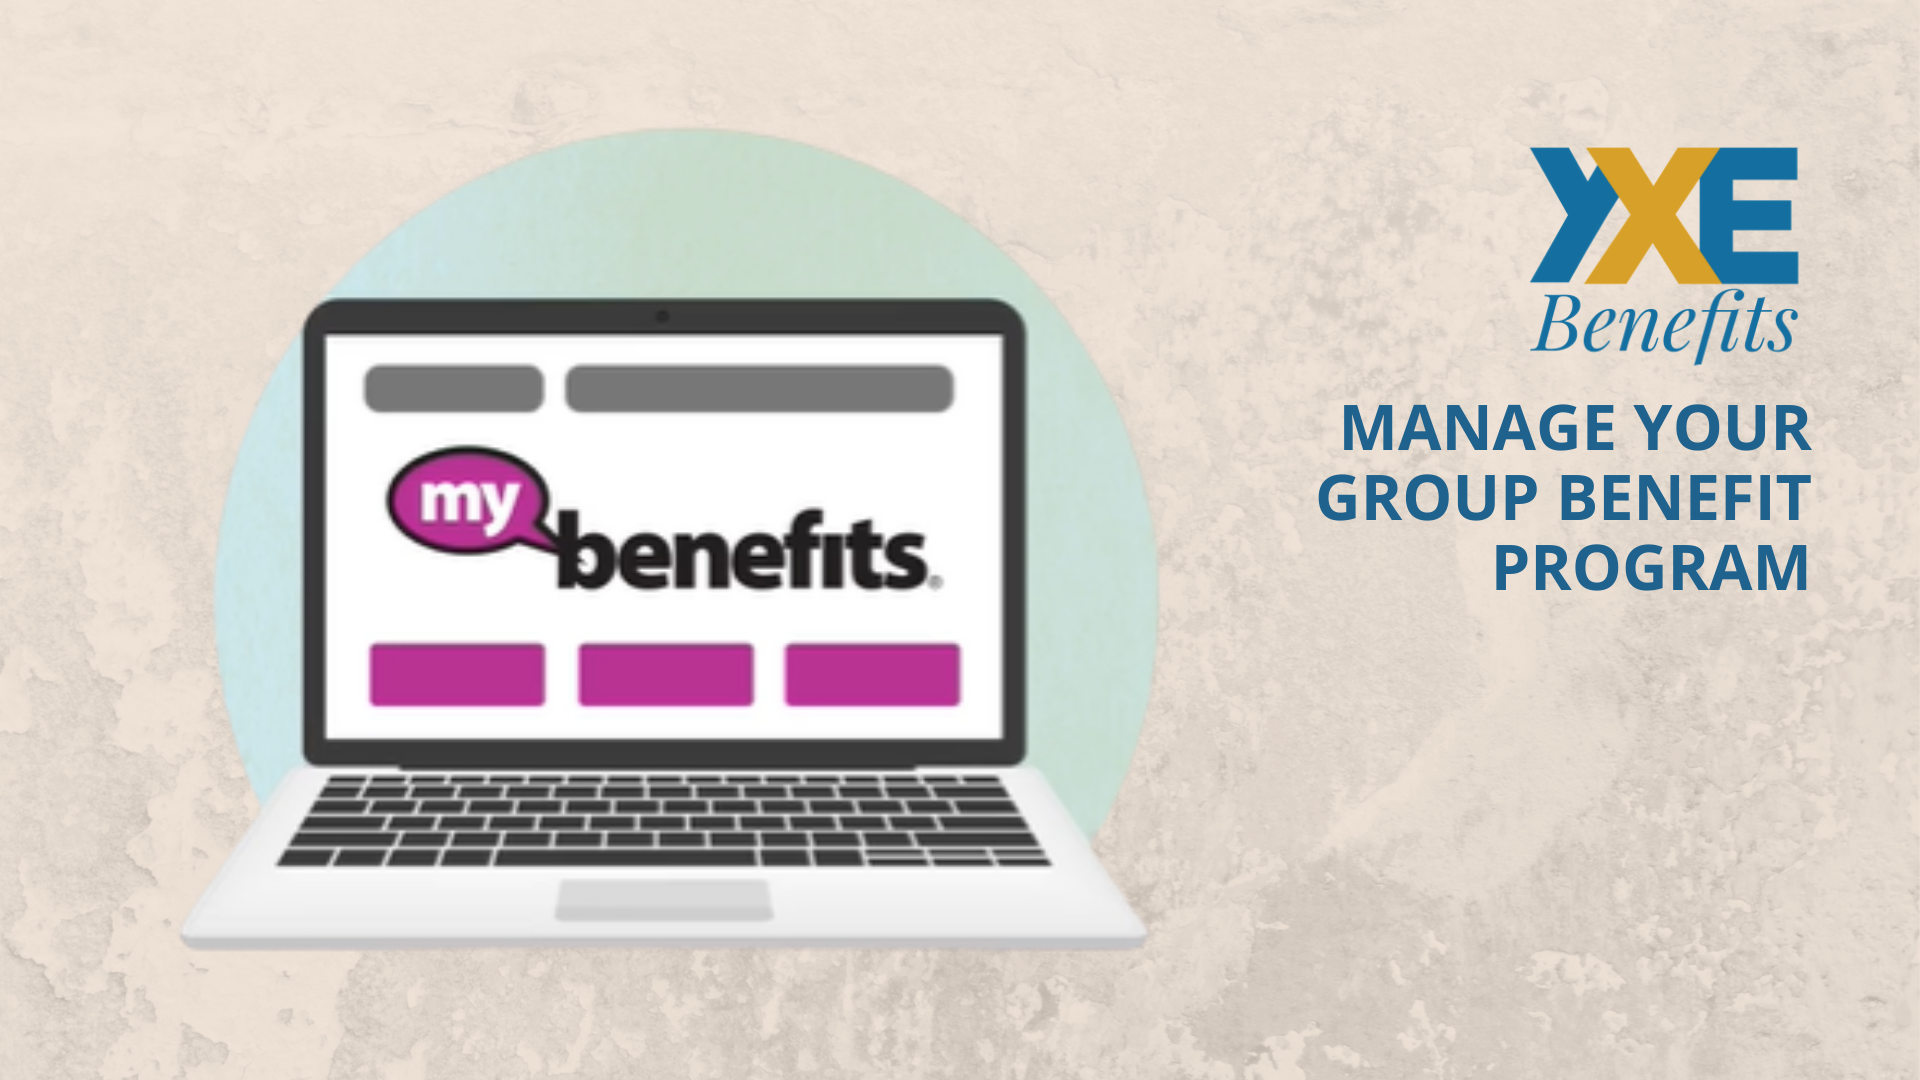 Manage Your Group Benefit Program With MyBenefits